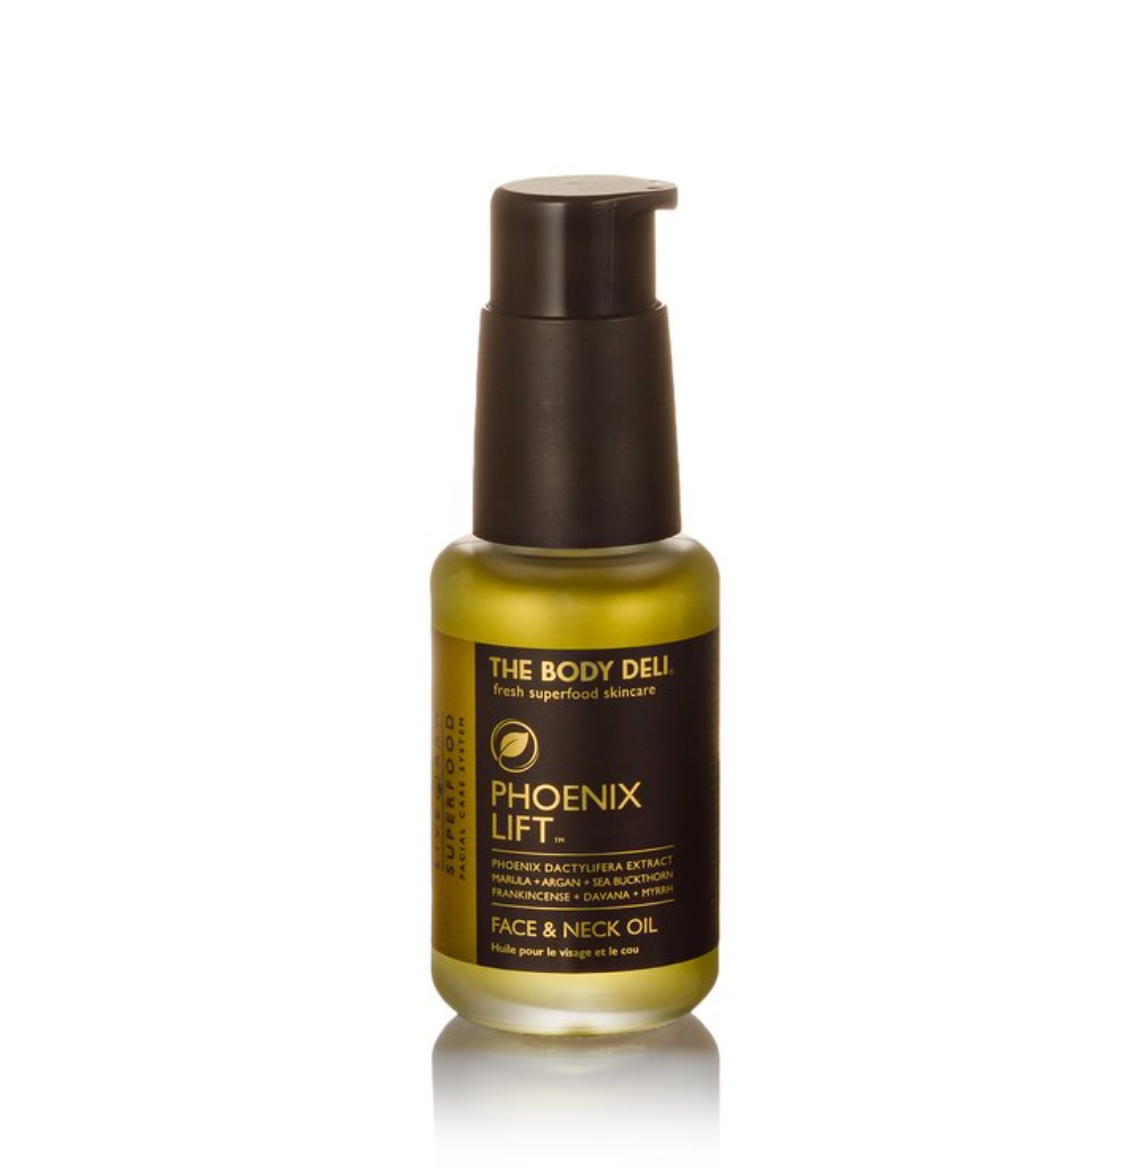 THE BODY DELI - Phoenix Lift Face and Neck Oil